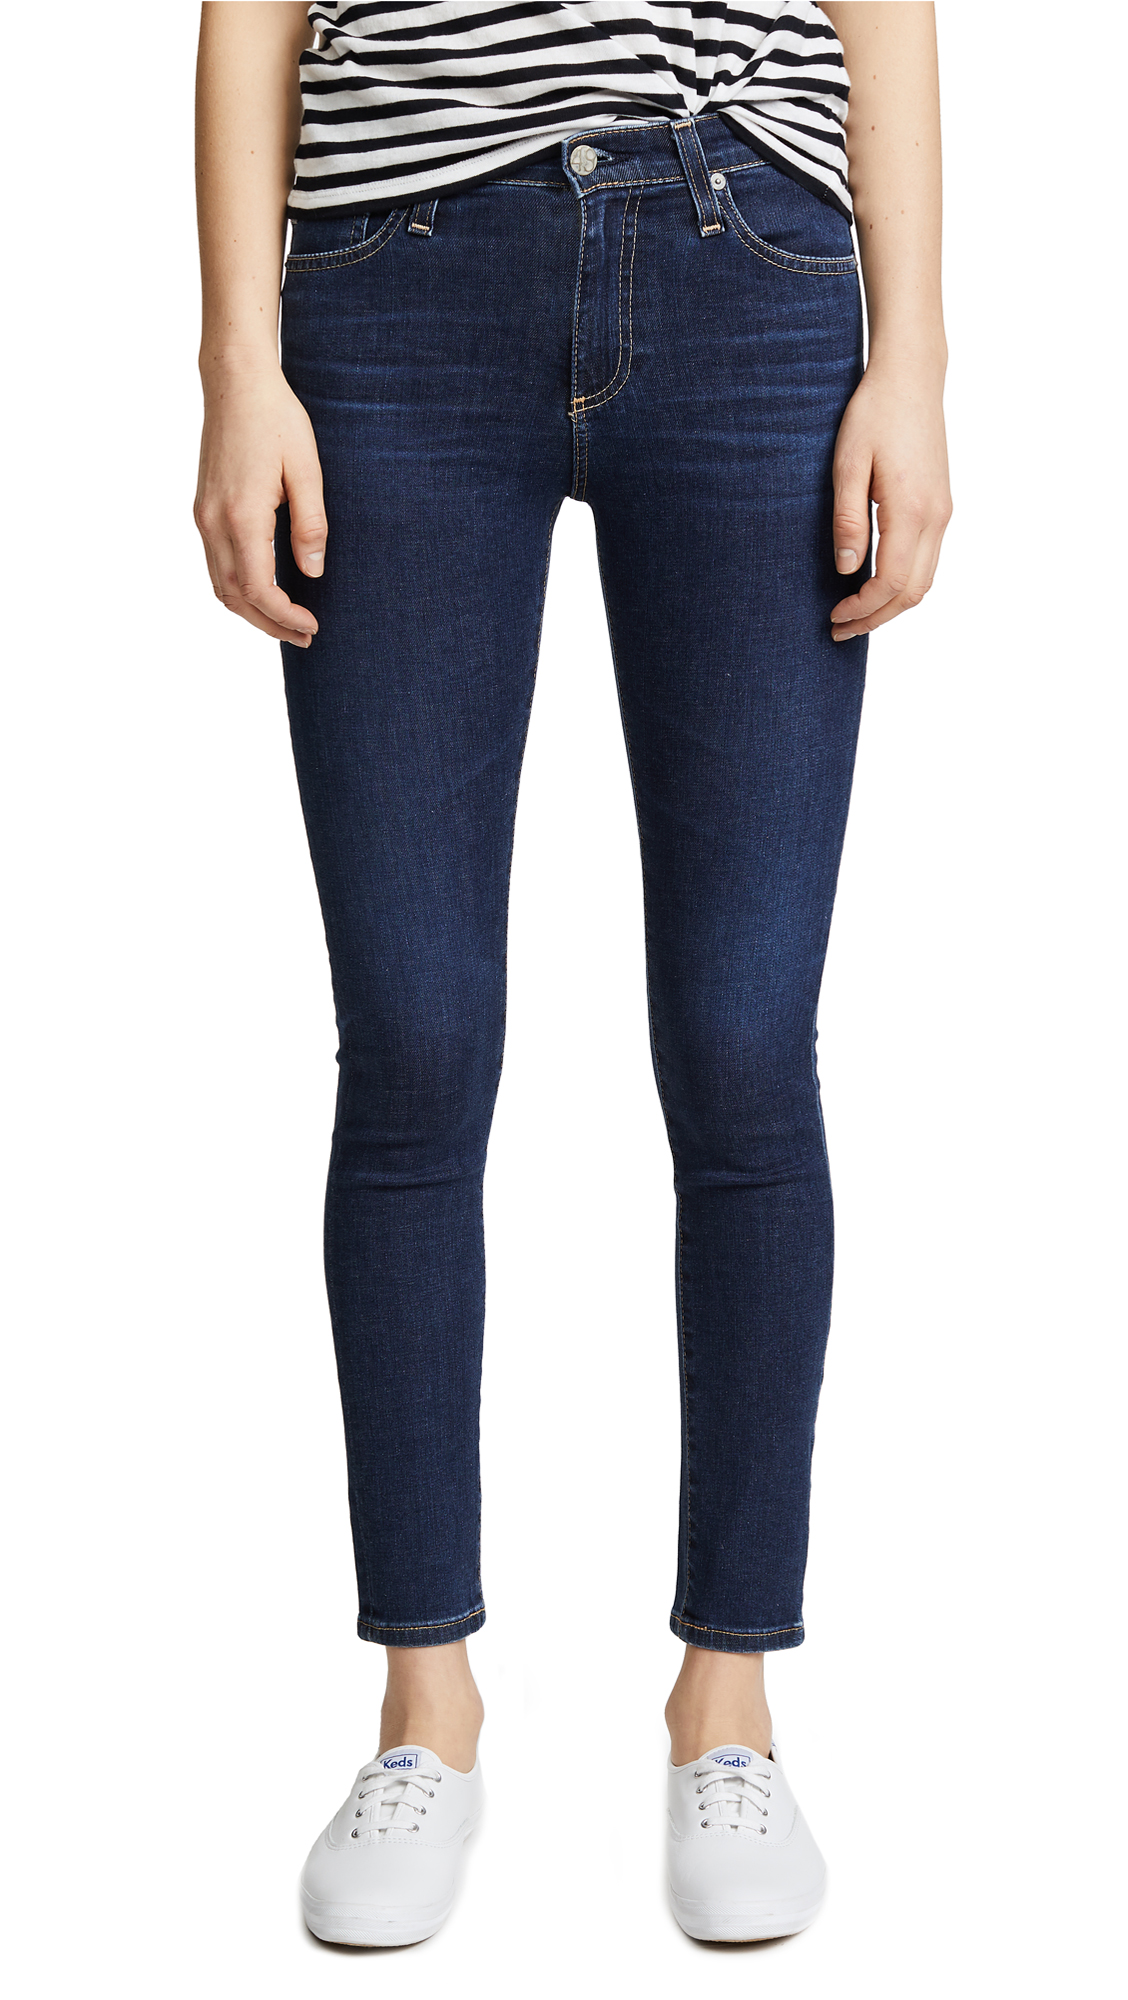 Farrah Stretch Skinny Ankle-Length Jeans